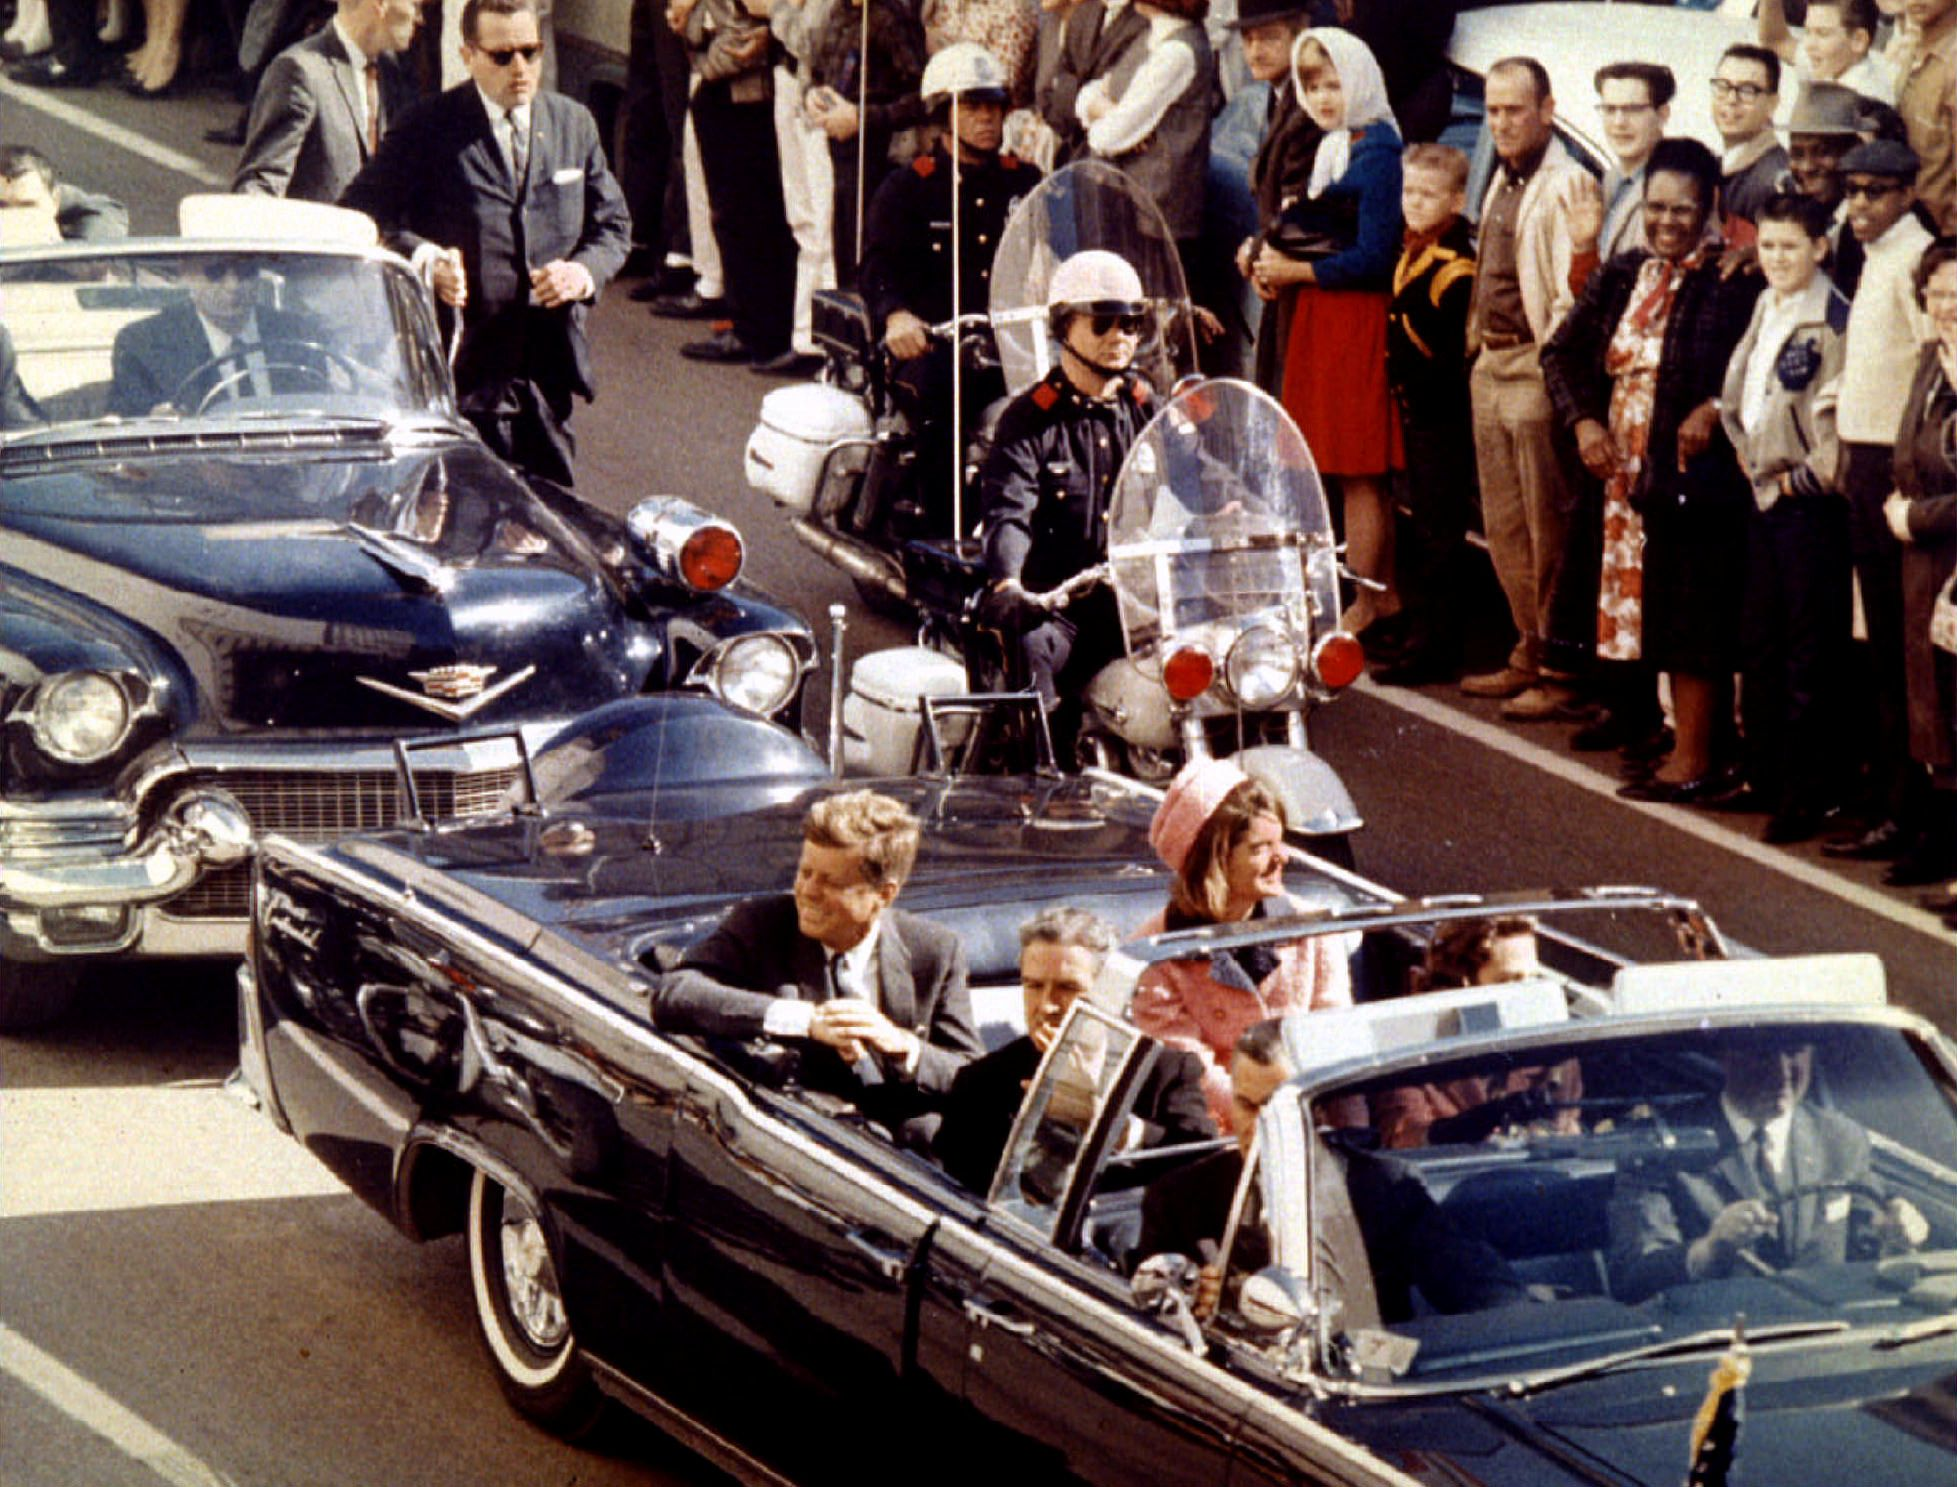 10_27_JFK_Assassination_Files_NationalArchives